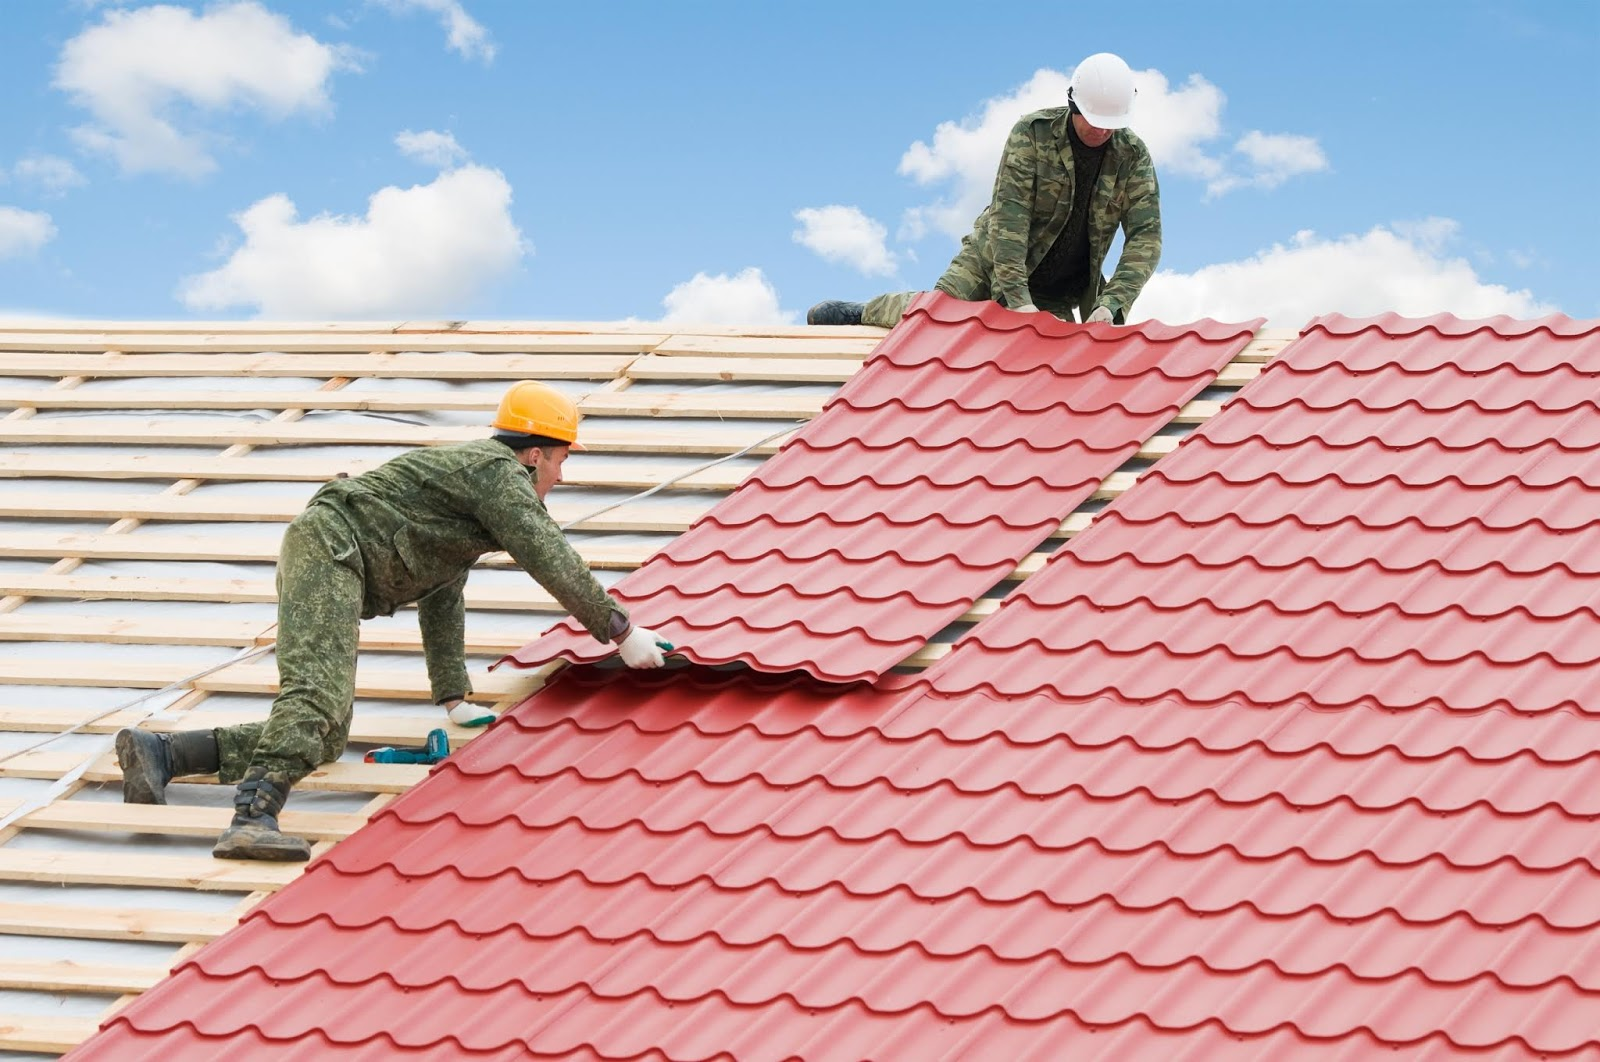 Roofing Company East Providence RI